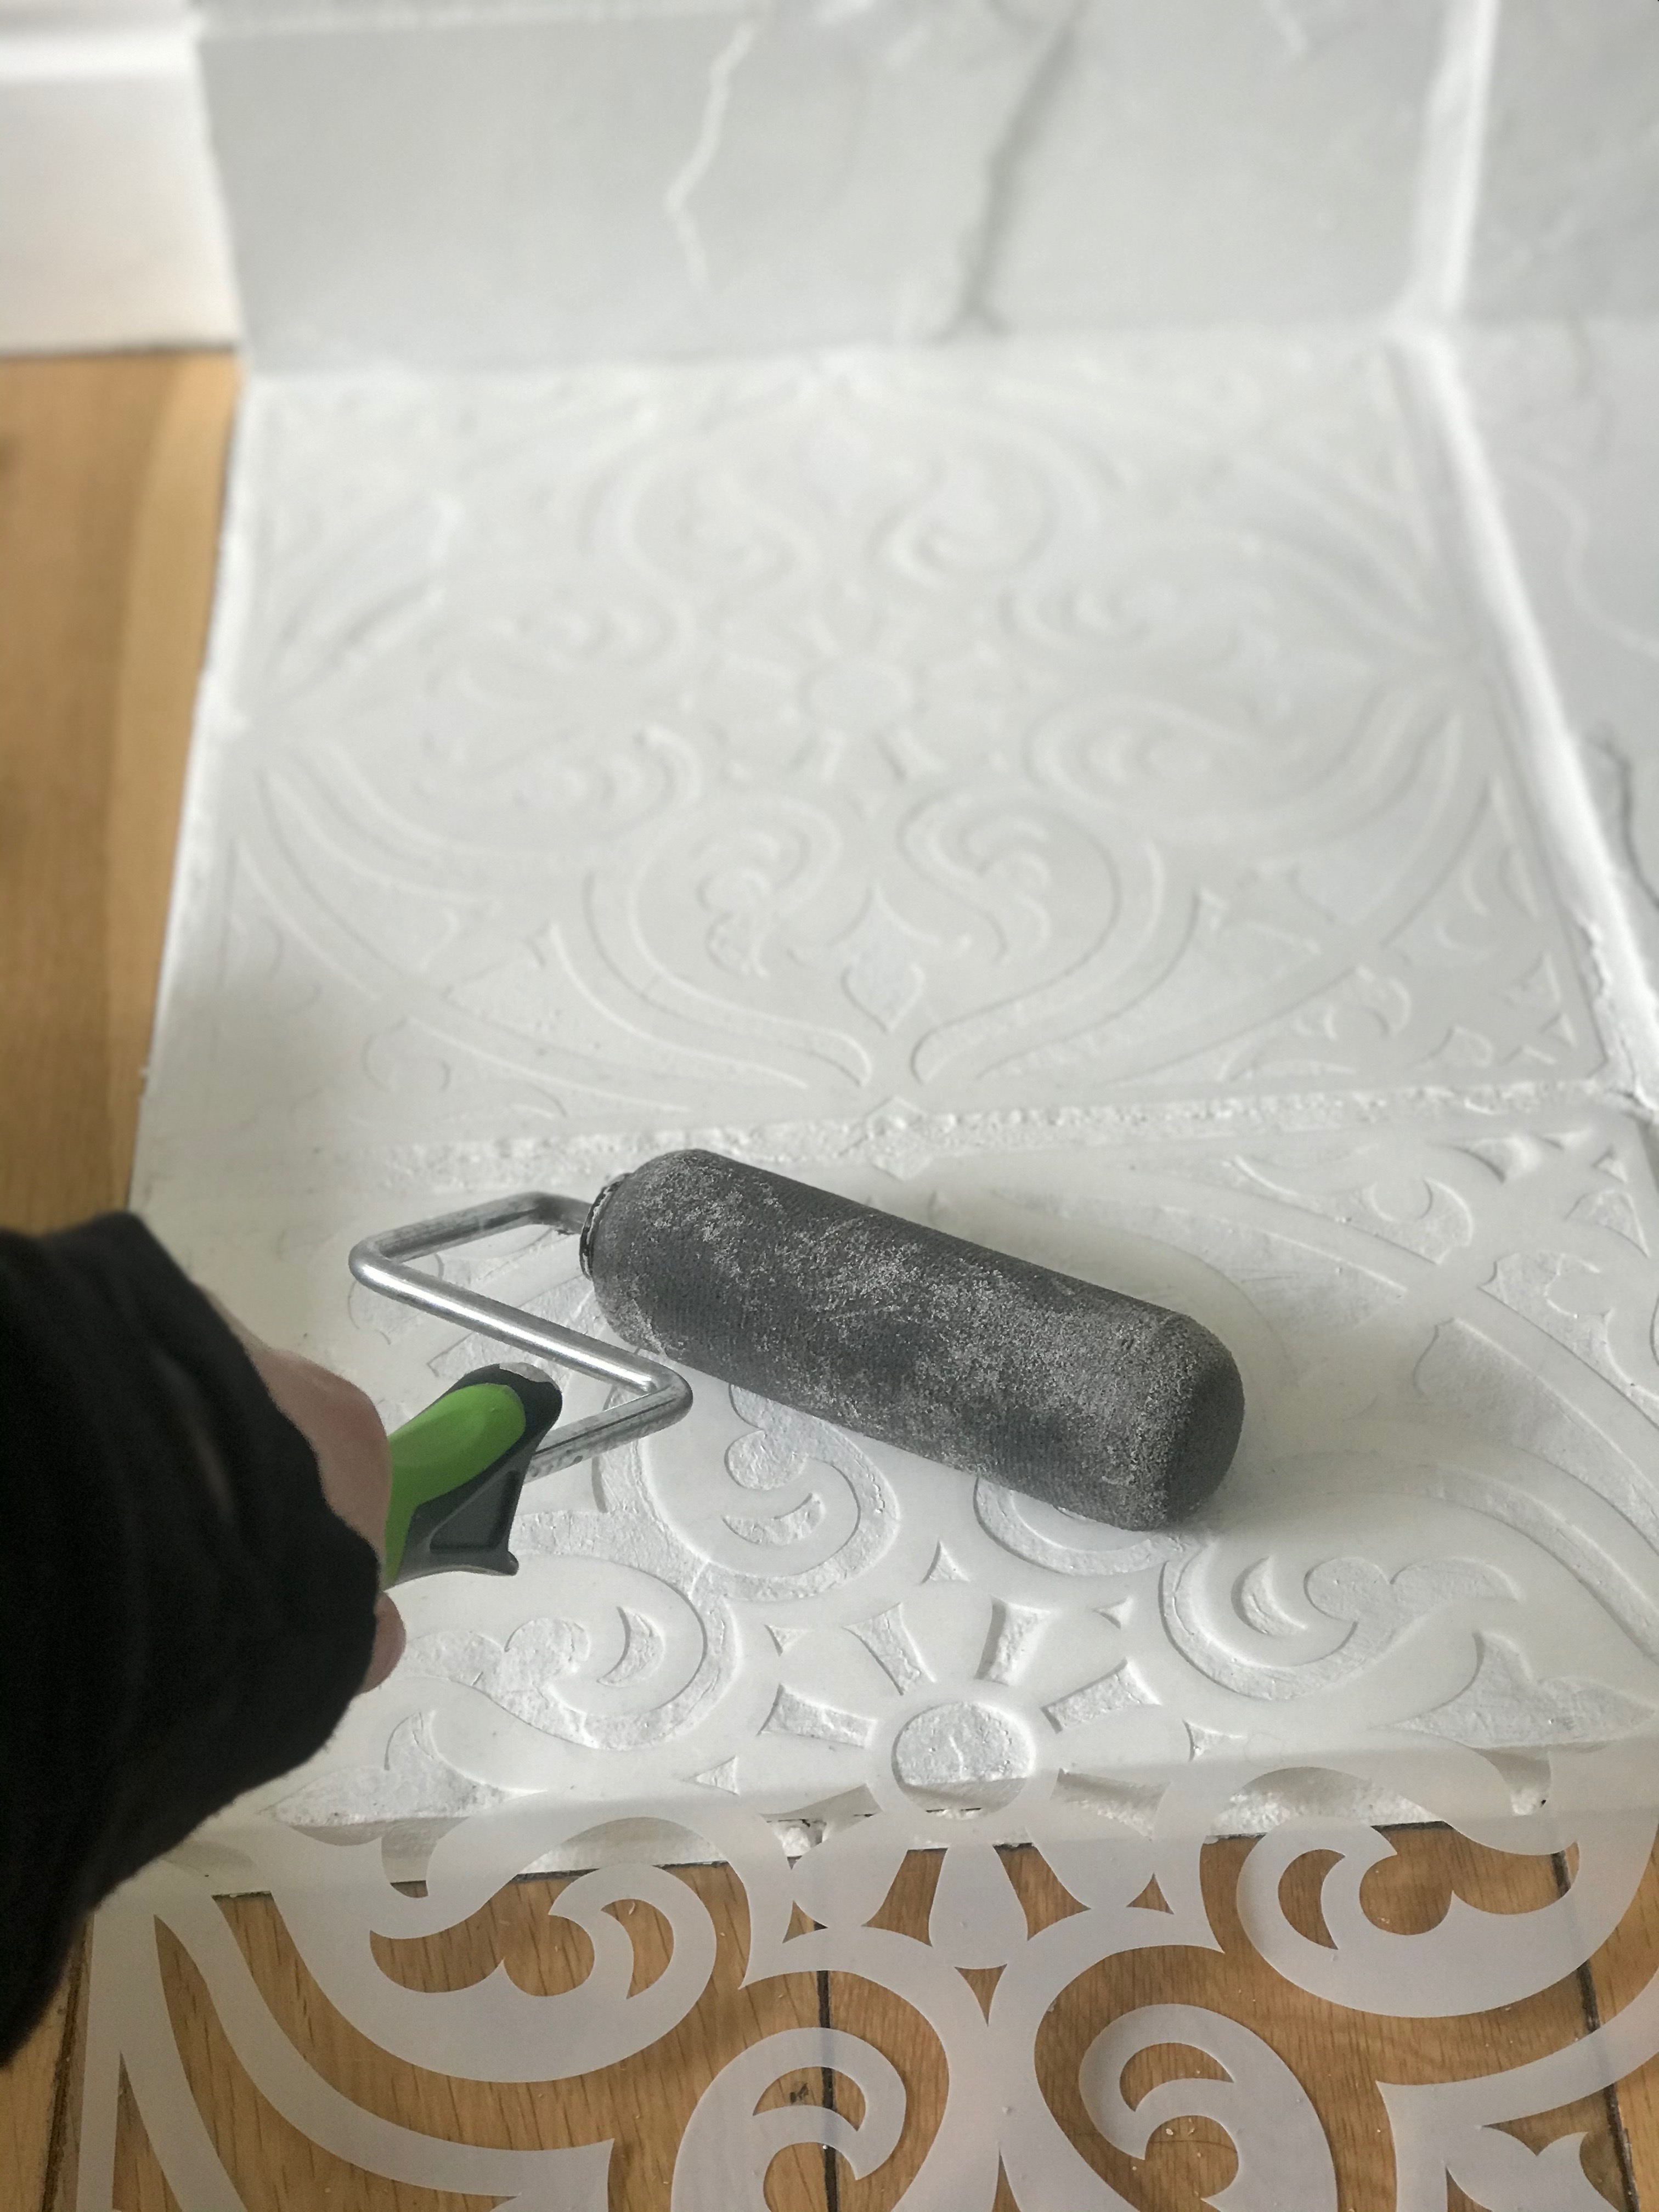 Step 2 to creating a custom DIY stencil for your fireplace mantel